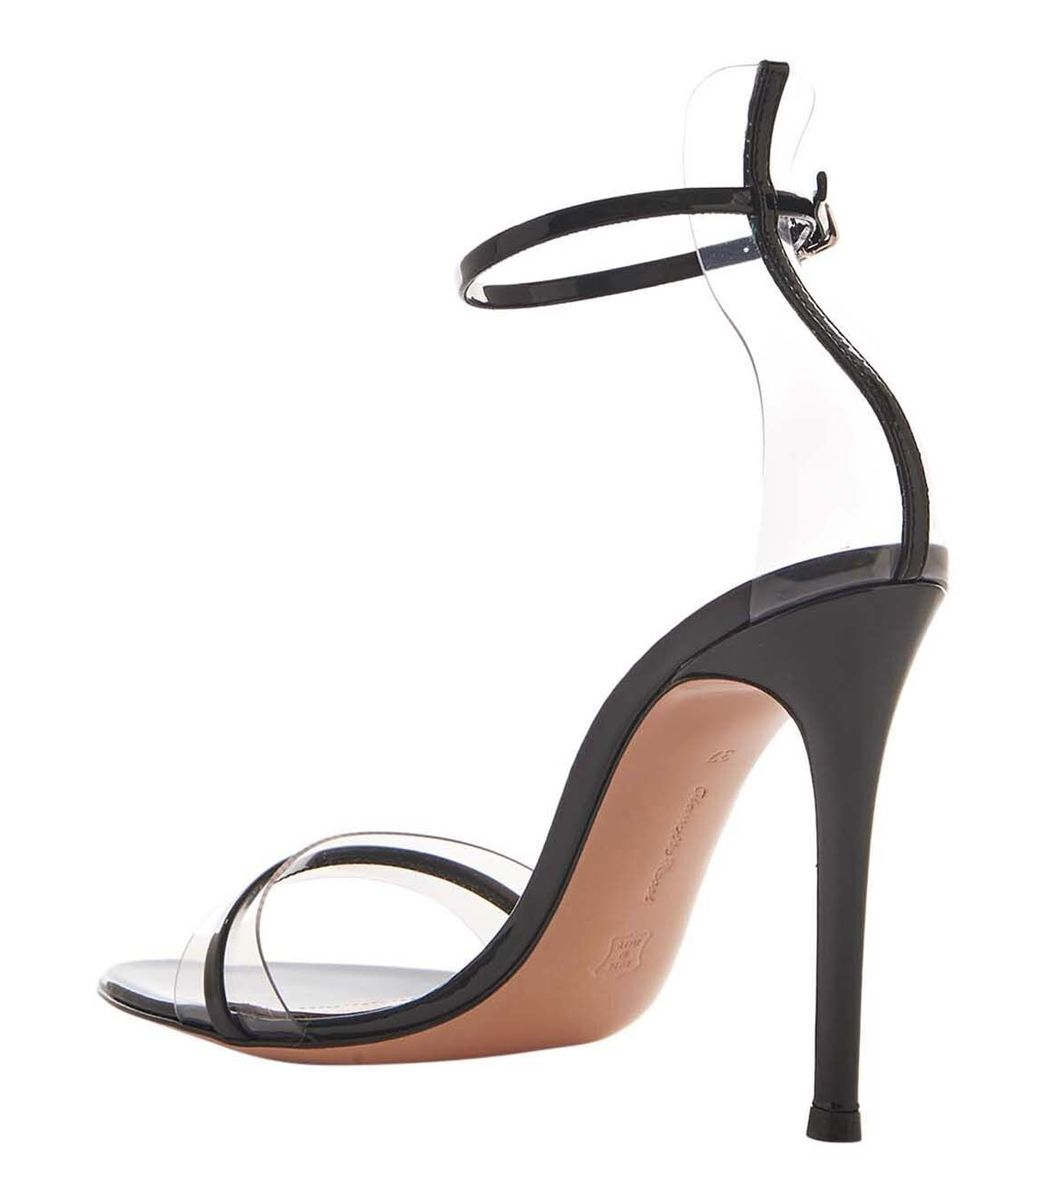 5adcb0381 Gianvito Rossi G String 105 Sandals - Black Patent Leather Sandals